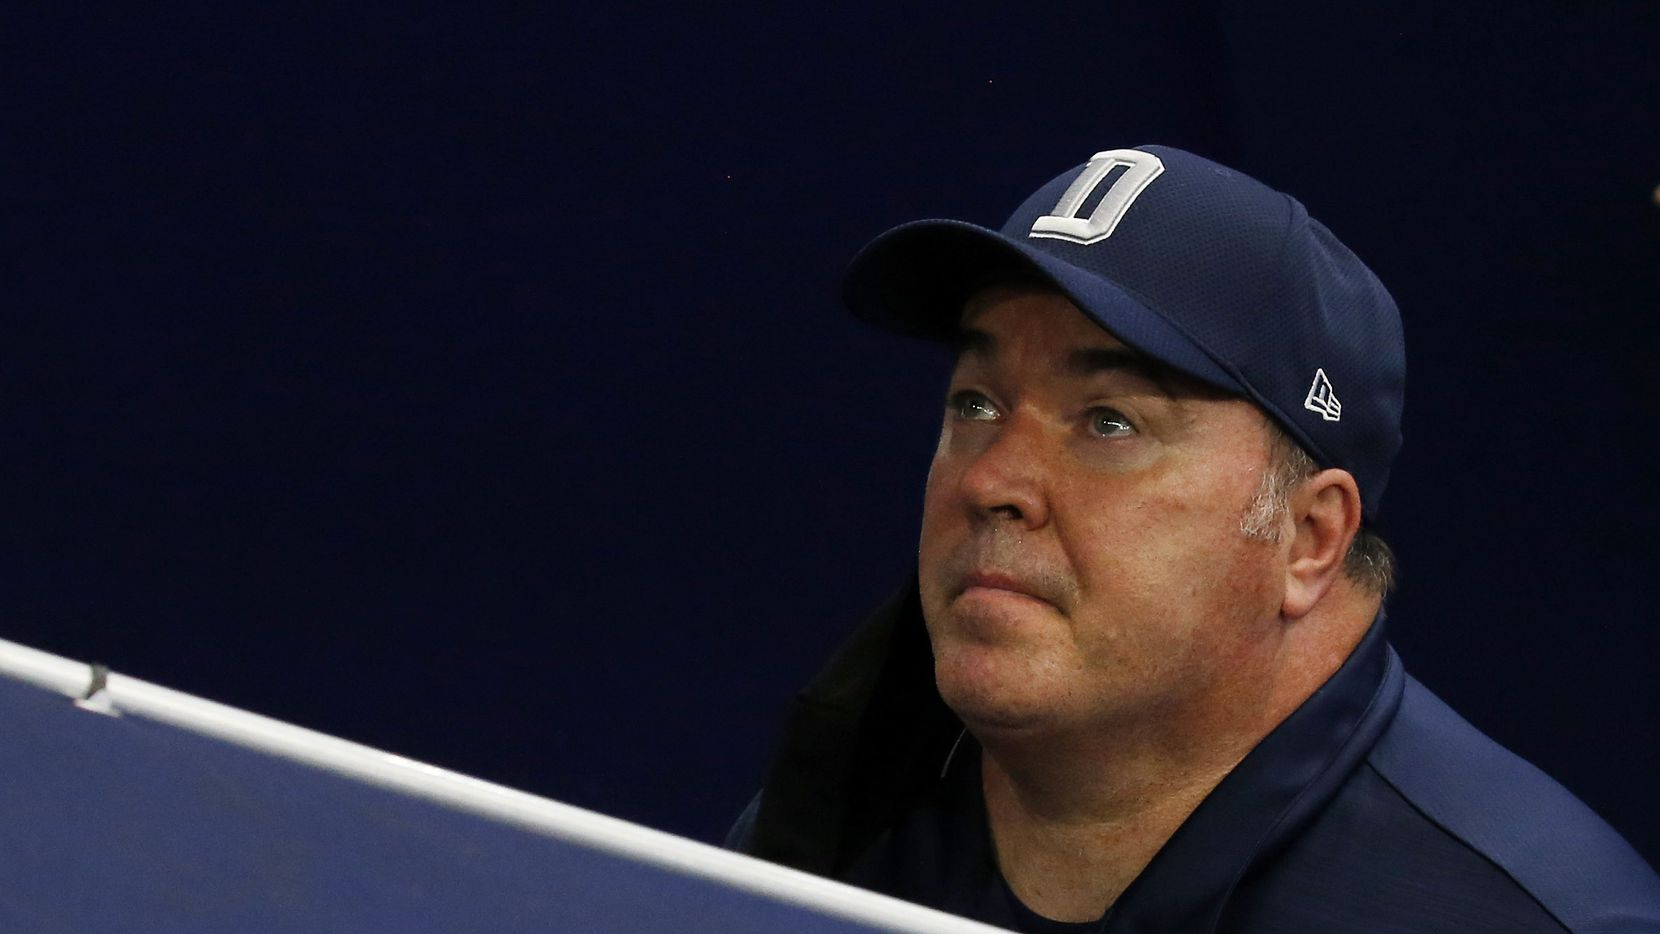 Cowboys head coach Mike McCarthy is pictured before a halftime interview during a game against the Falcons on Sunday, Sept. 20, 2020, at AT&T Stadium in Arlington.